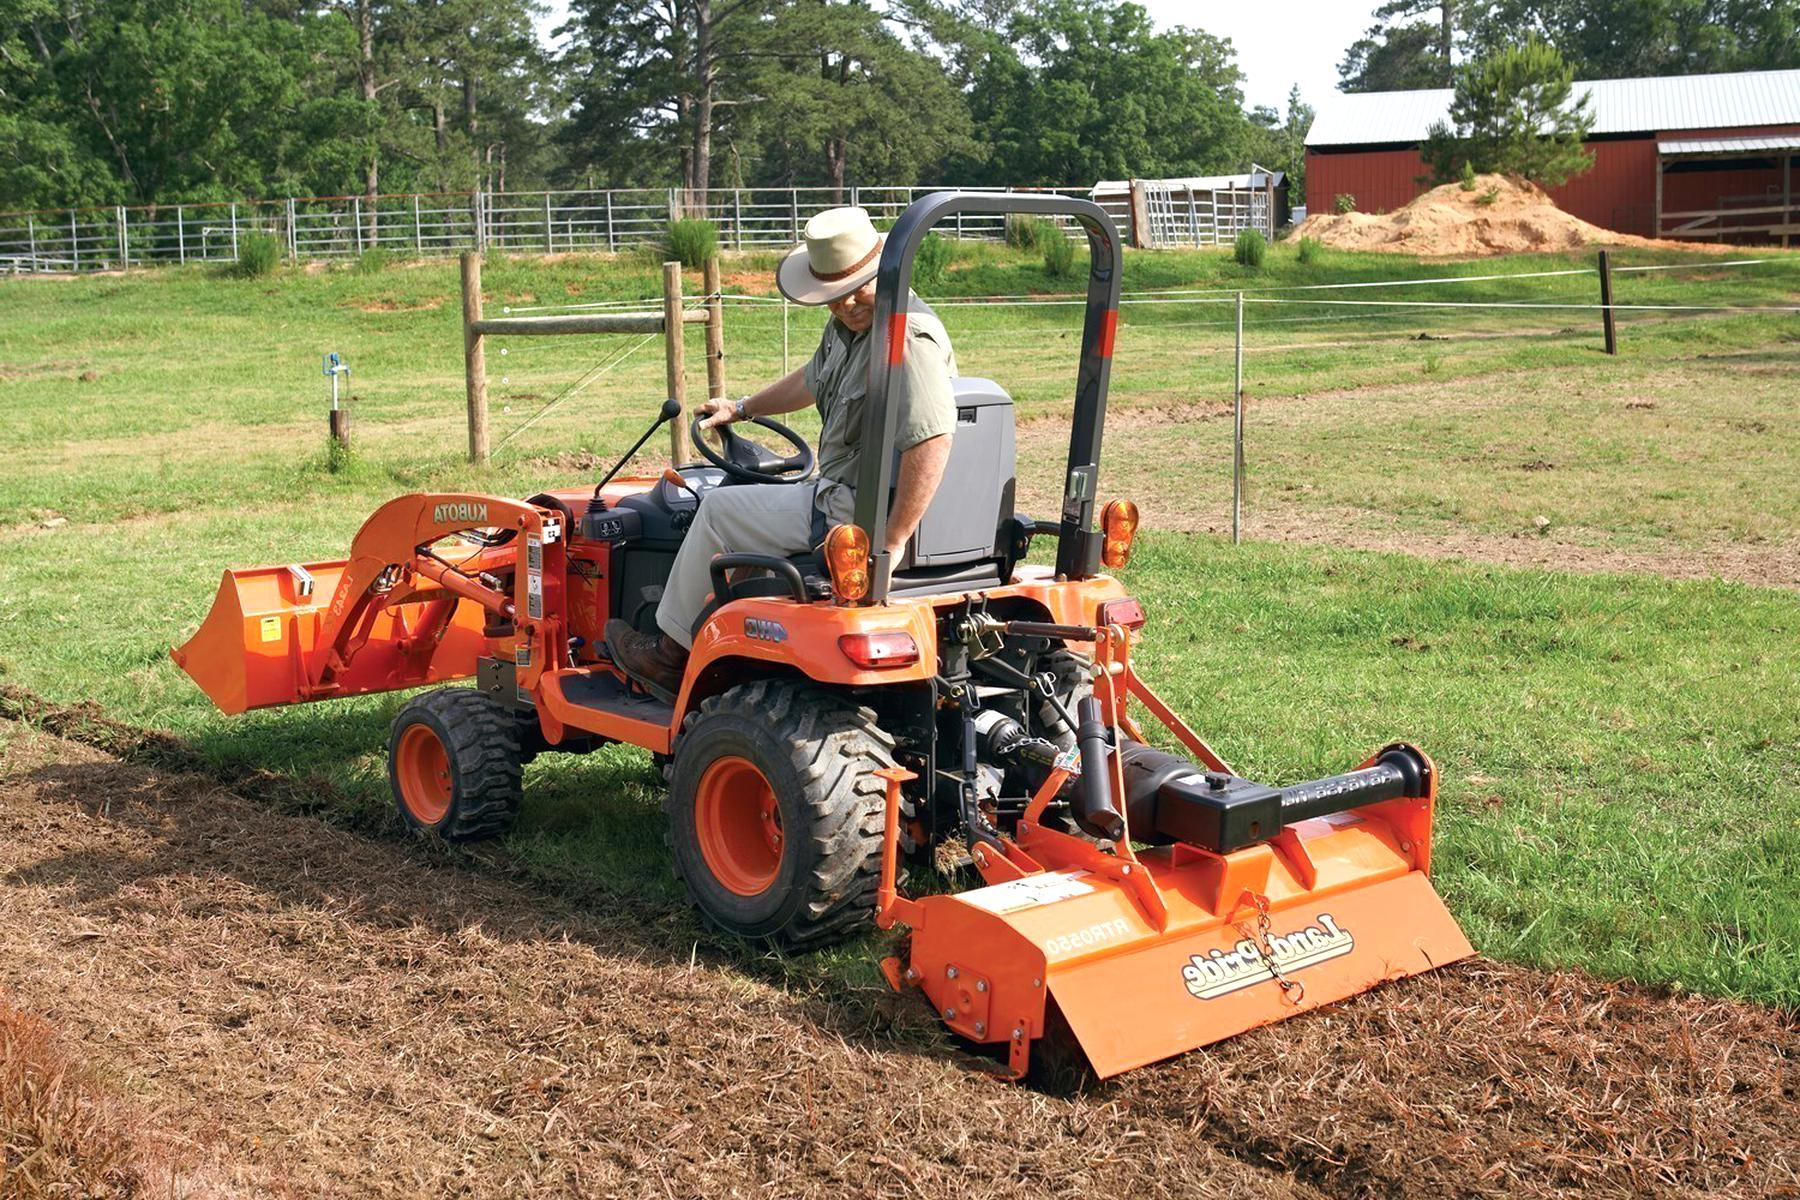 roto tiller tractor for sale